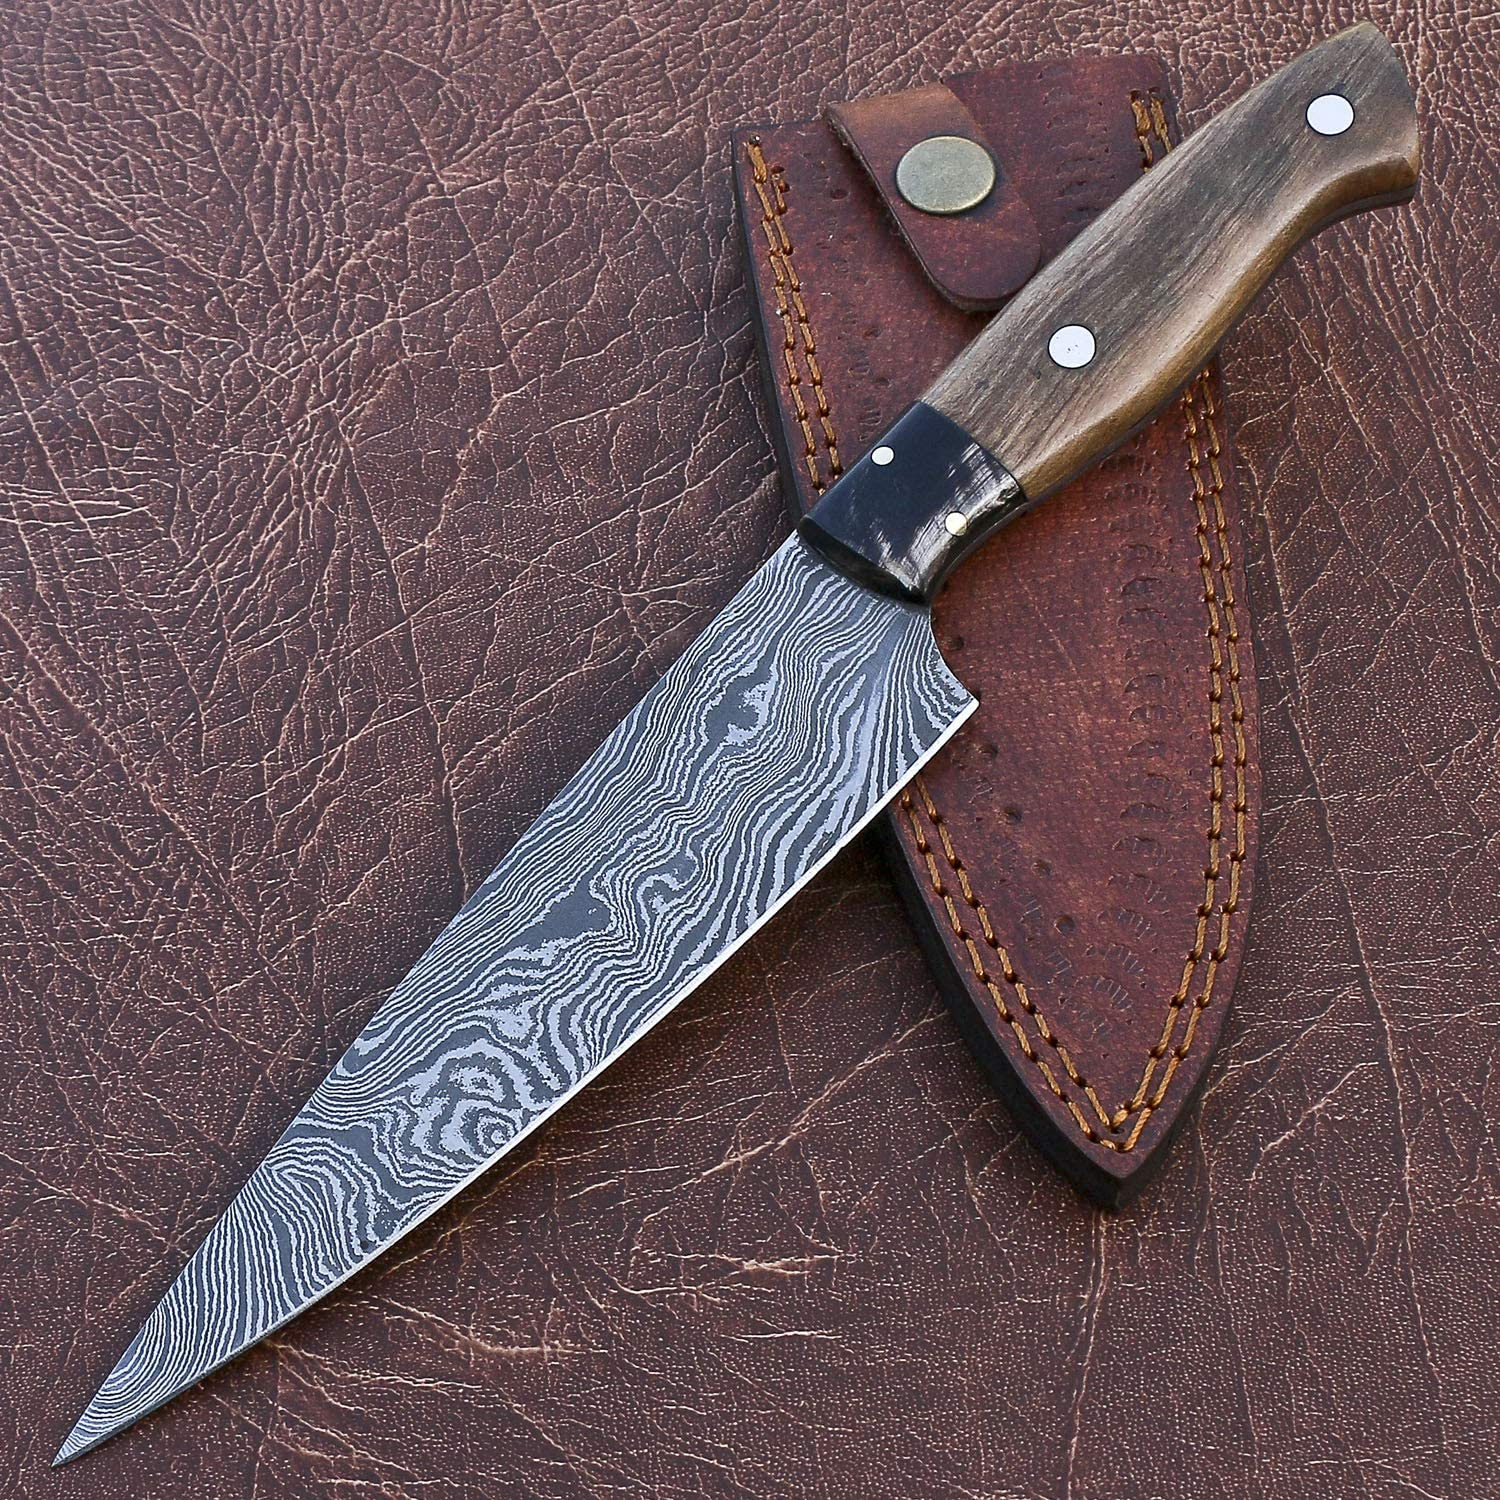 Handmade Damascus Steel NEW before selling Chef Super Special SALE held Kitchen wit Knife Home Professional